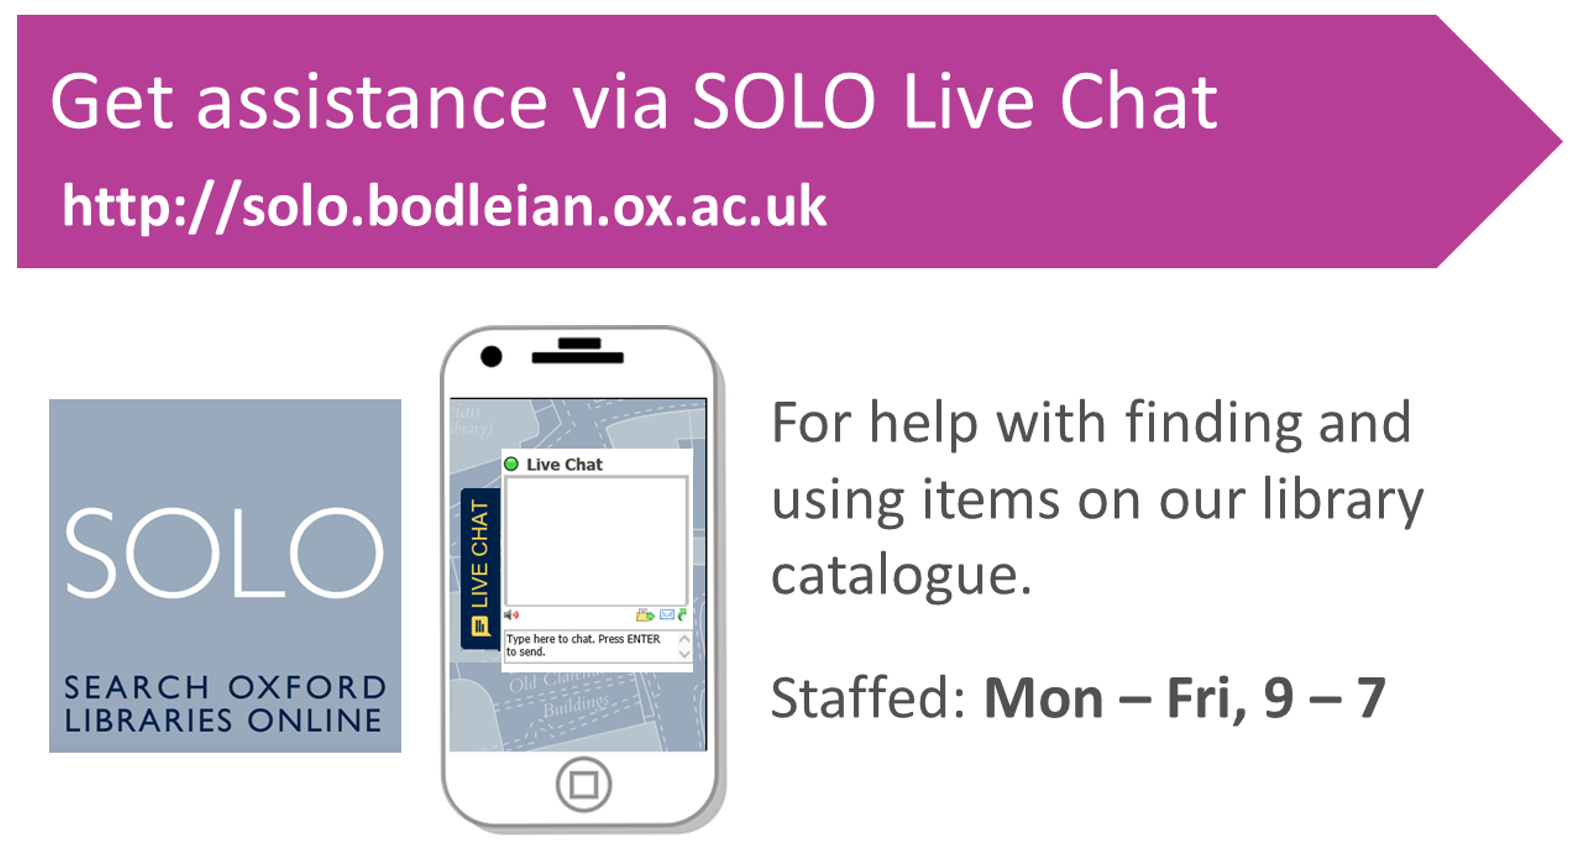 Image of a mobile phone with the Live Chat box image on it. The words on the image say 'Get assistance via SOLO Live Chat, for help with finding and using items on our library catalogue. Staffed Mon to Fri 9 to 7.